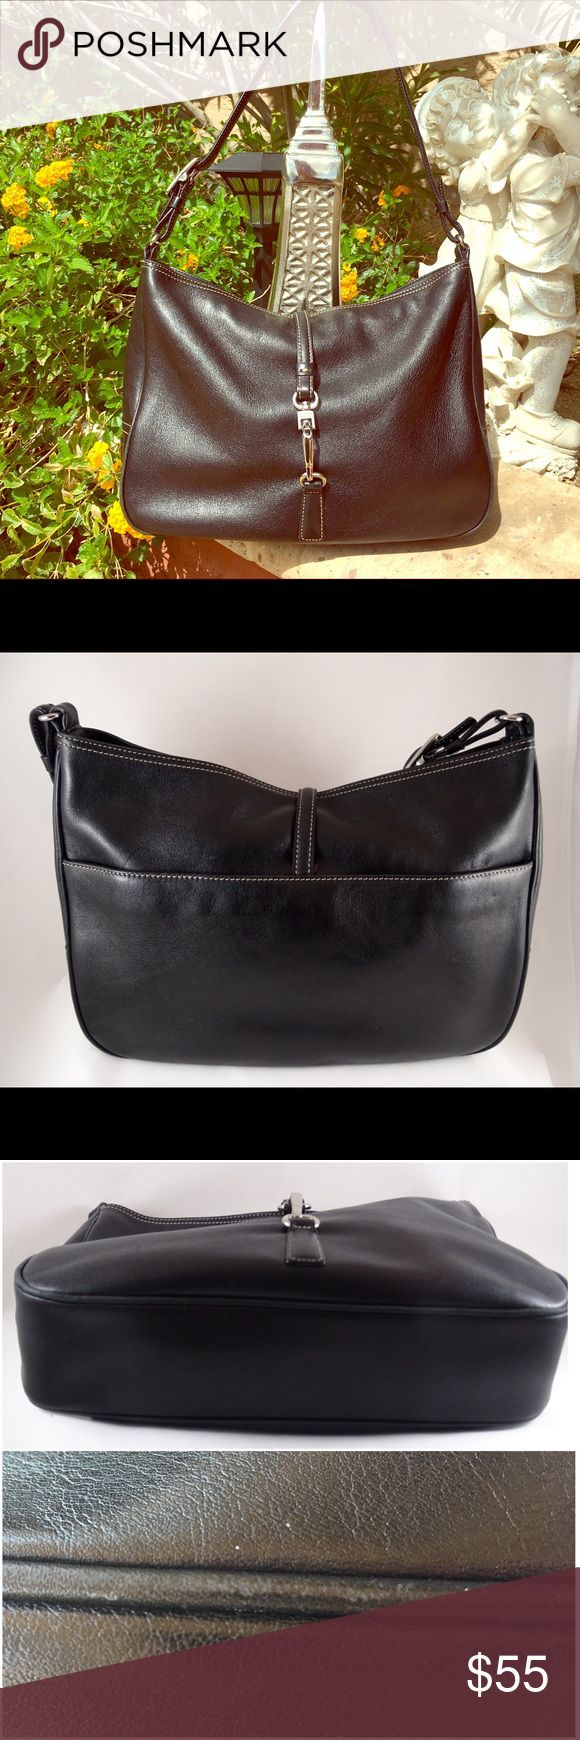 """Vintage Coach """"Hampton"""" Leather Hobo Shoulder Bag Classic vintage Coach """"Hampton"""" shoulder Hobo bag in black leather and contrasting stitching. An over-the-top strap closure in nickel hardware, engraved with Coach, on the pinch clasp. Exterior side pocket, an interior side zipper pocket, and lined with quality brown fabric lining. Dimensions in pic, and measure 11.5""""x8.5""""x2.5"""" with adjustable shoulder strap, 19"""". Great pre-owned condition with normal leather wear on bottom piping edge(see…"""